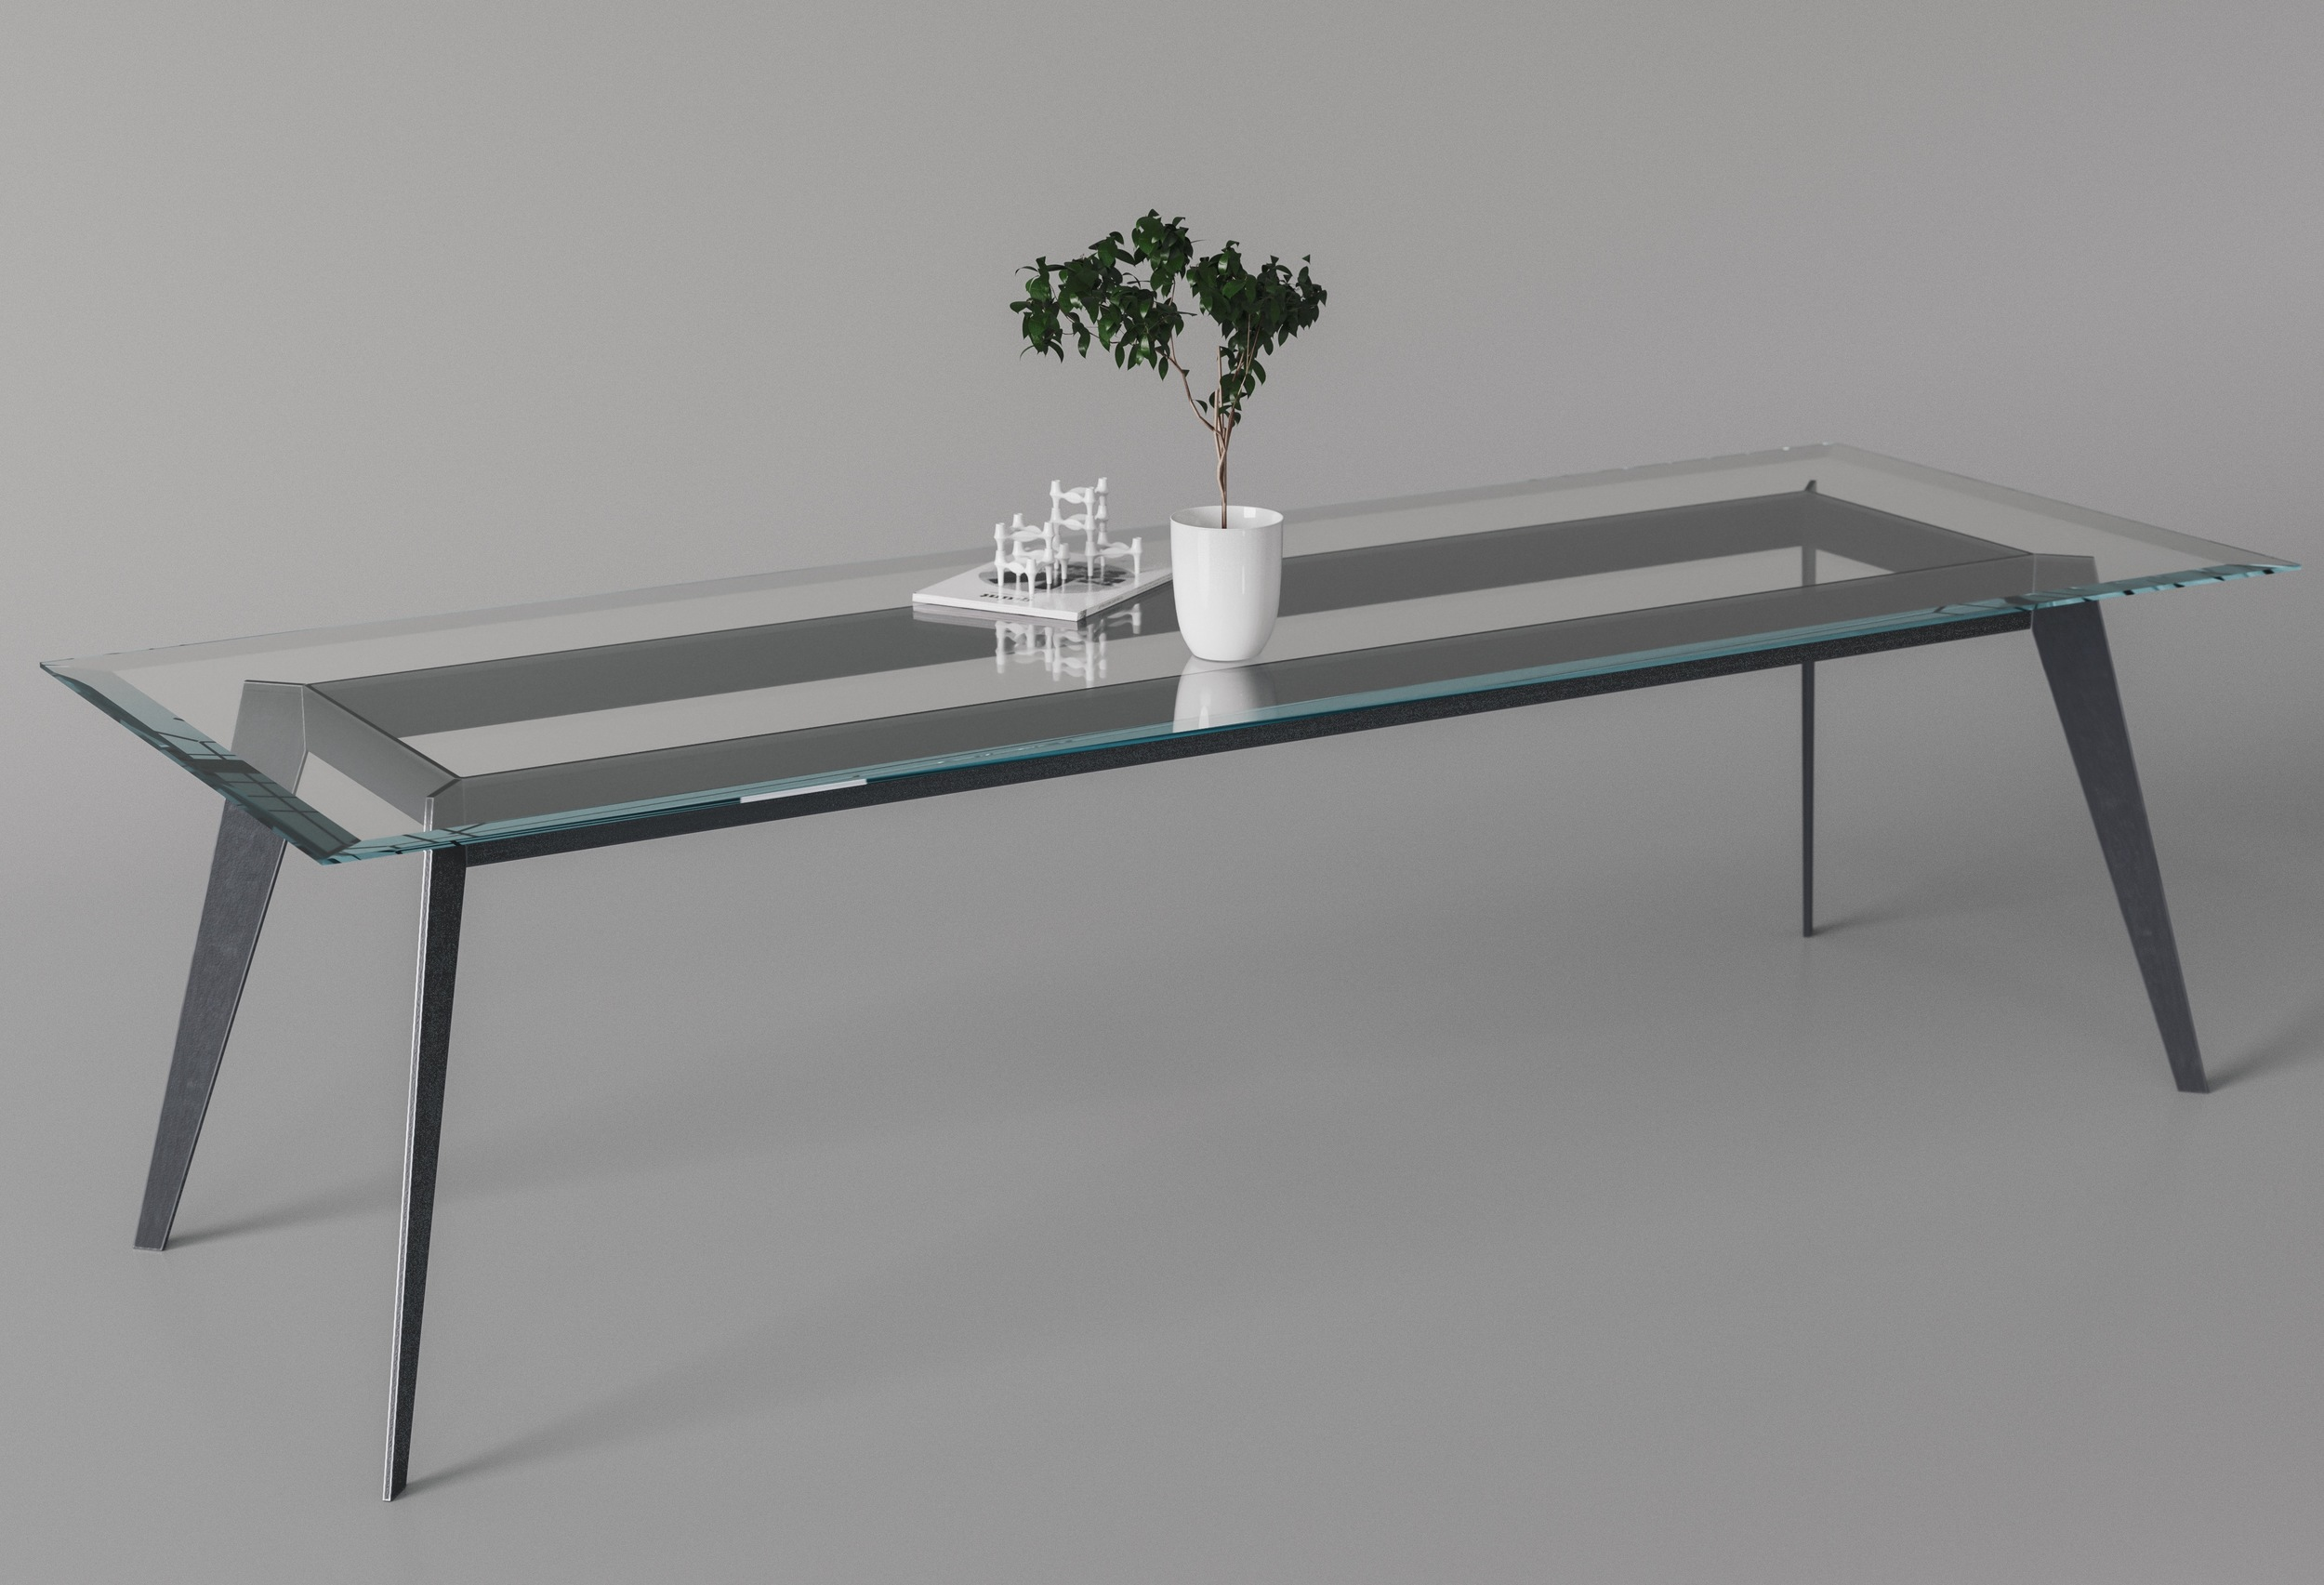 Full photo of table with custom blue table top